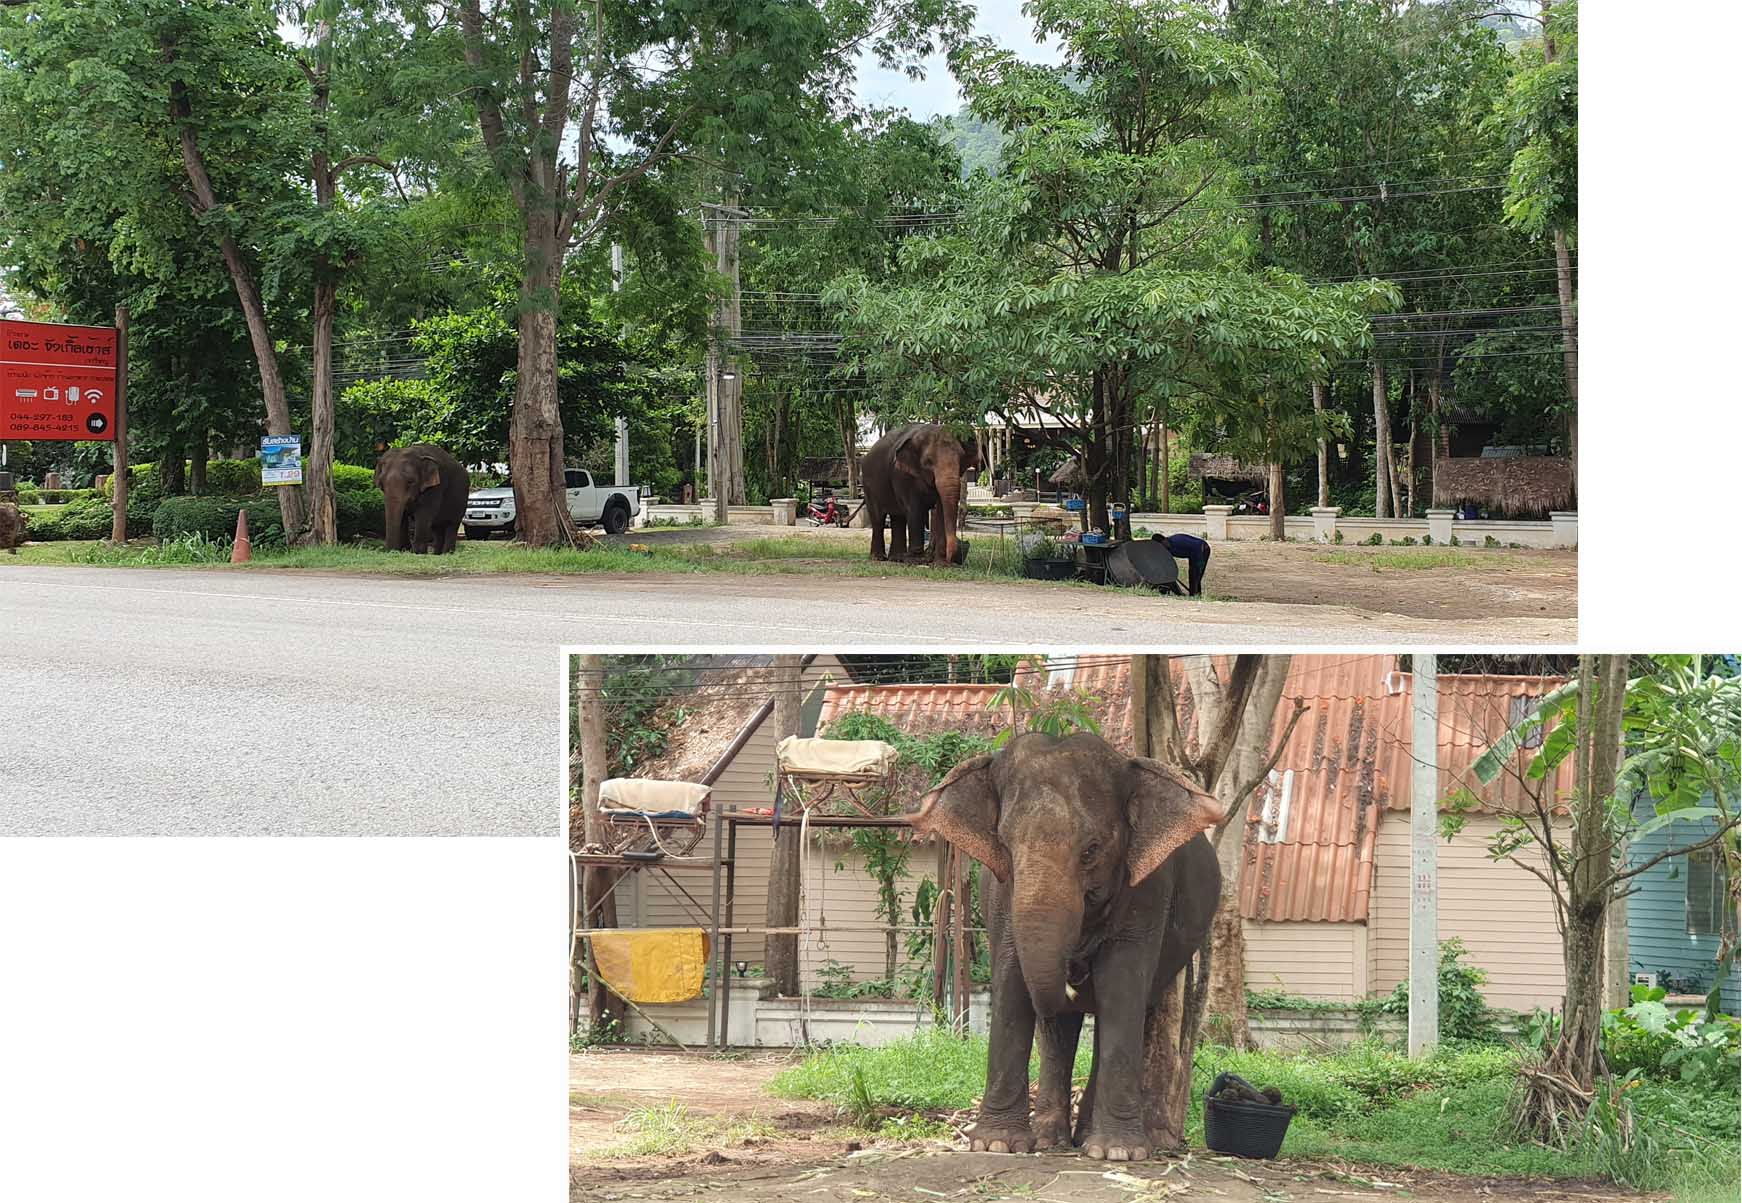 Elephants by the side of the road at Khao Yai National Park